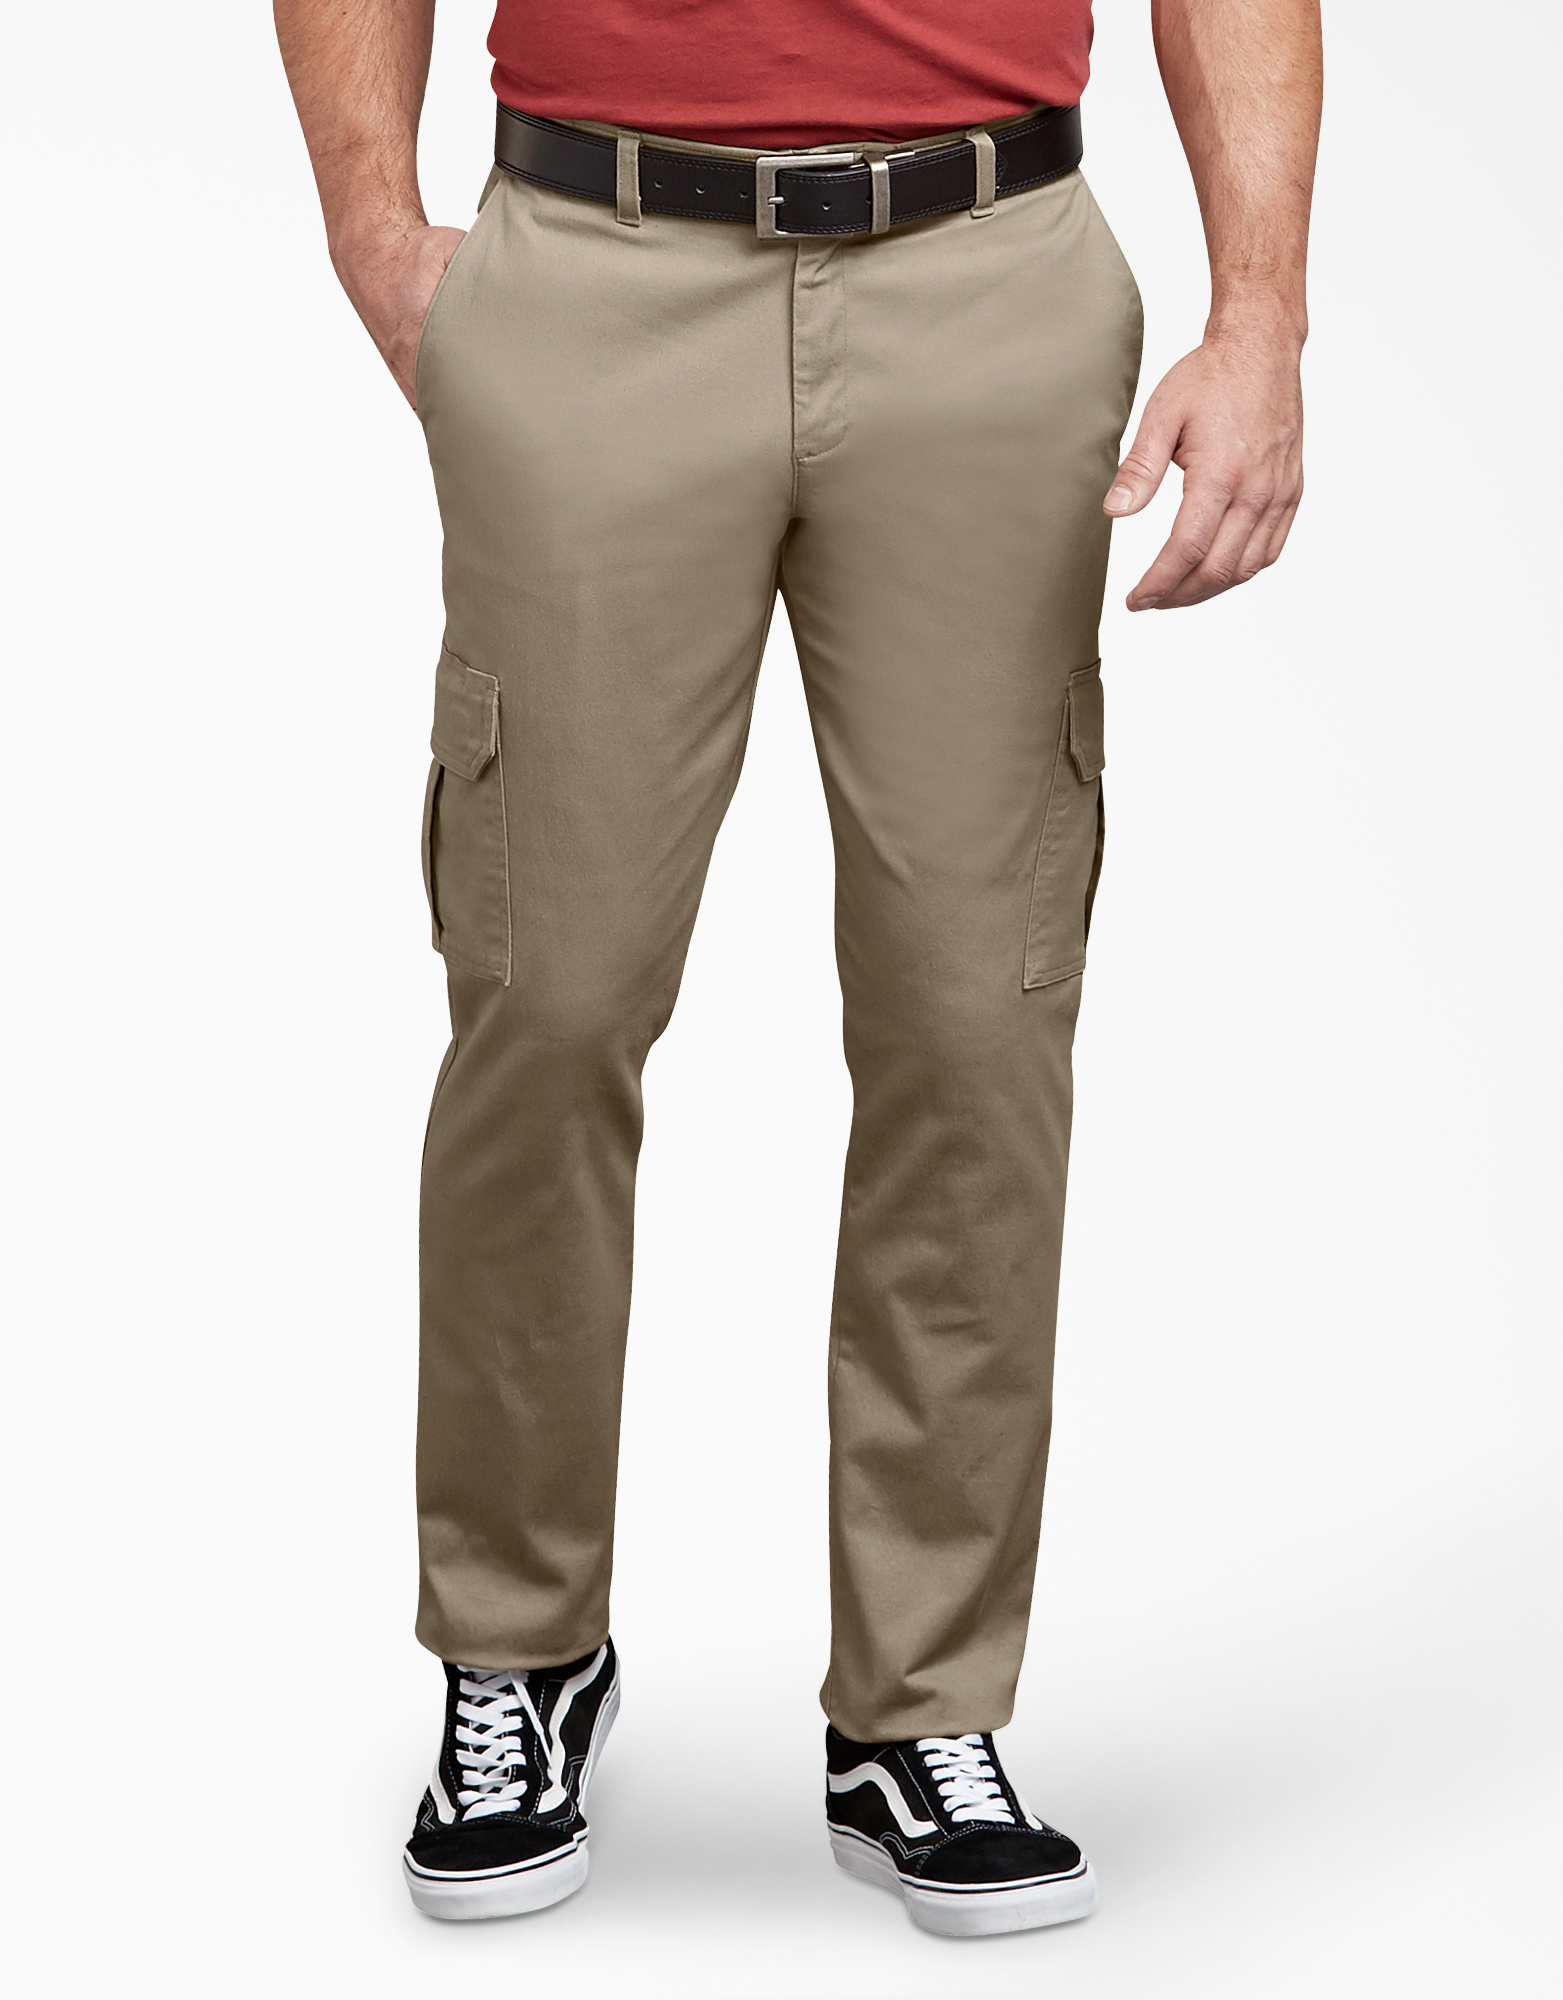 Dickies X-Series Active Waist Washed Cargo Chino Pants - Desert Khaki (RDS)